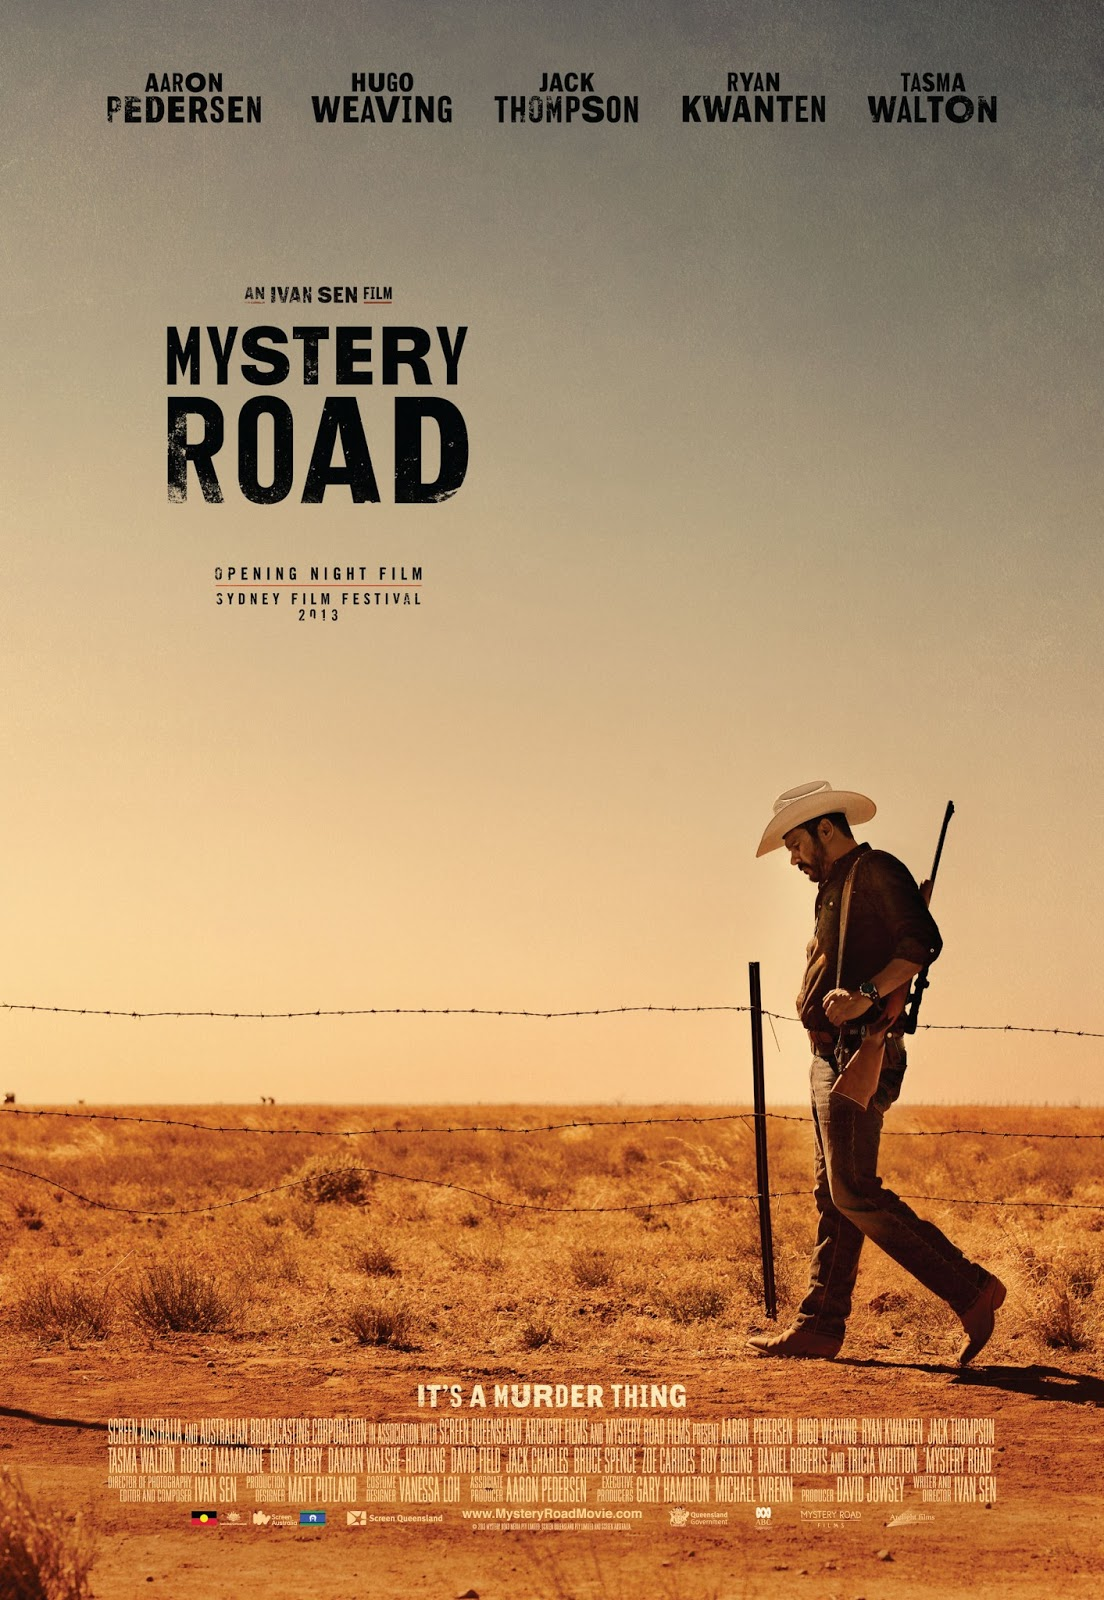 Anatomy of a film poster: MYSTERY ROAD | A Life In Film